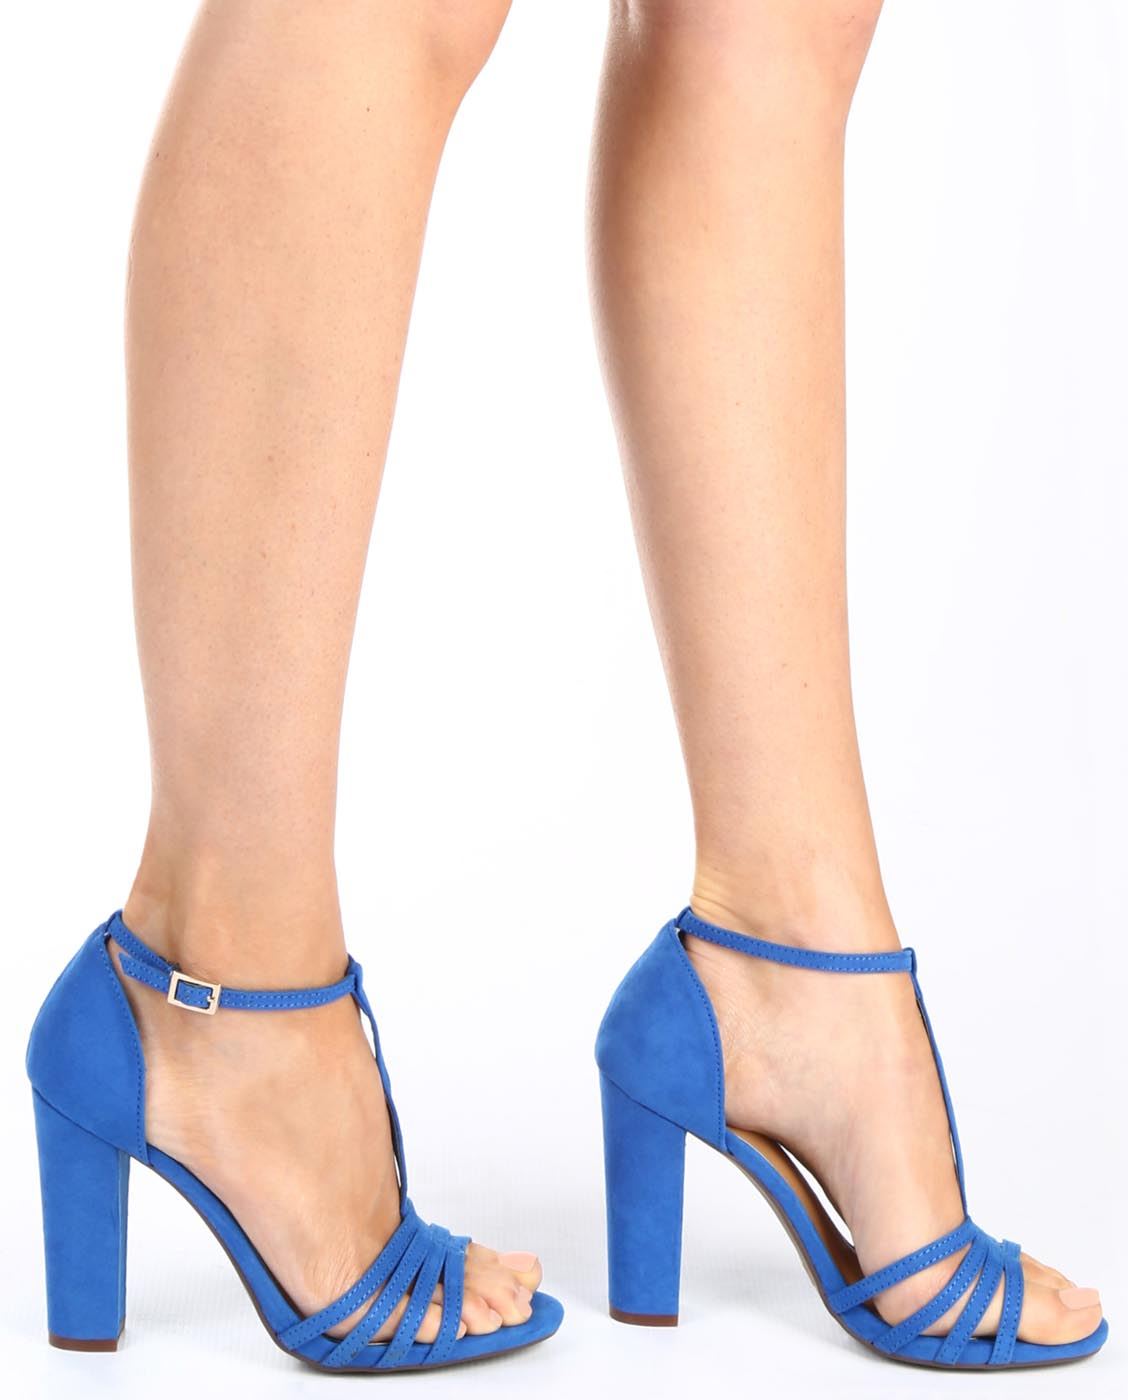 T-Strap Open Toe Heels - Fashion You Up